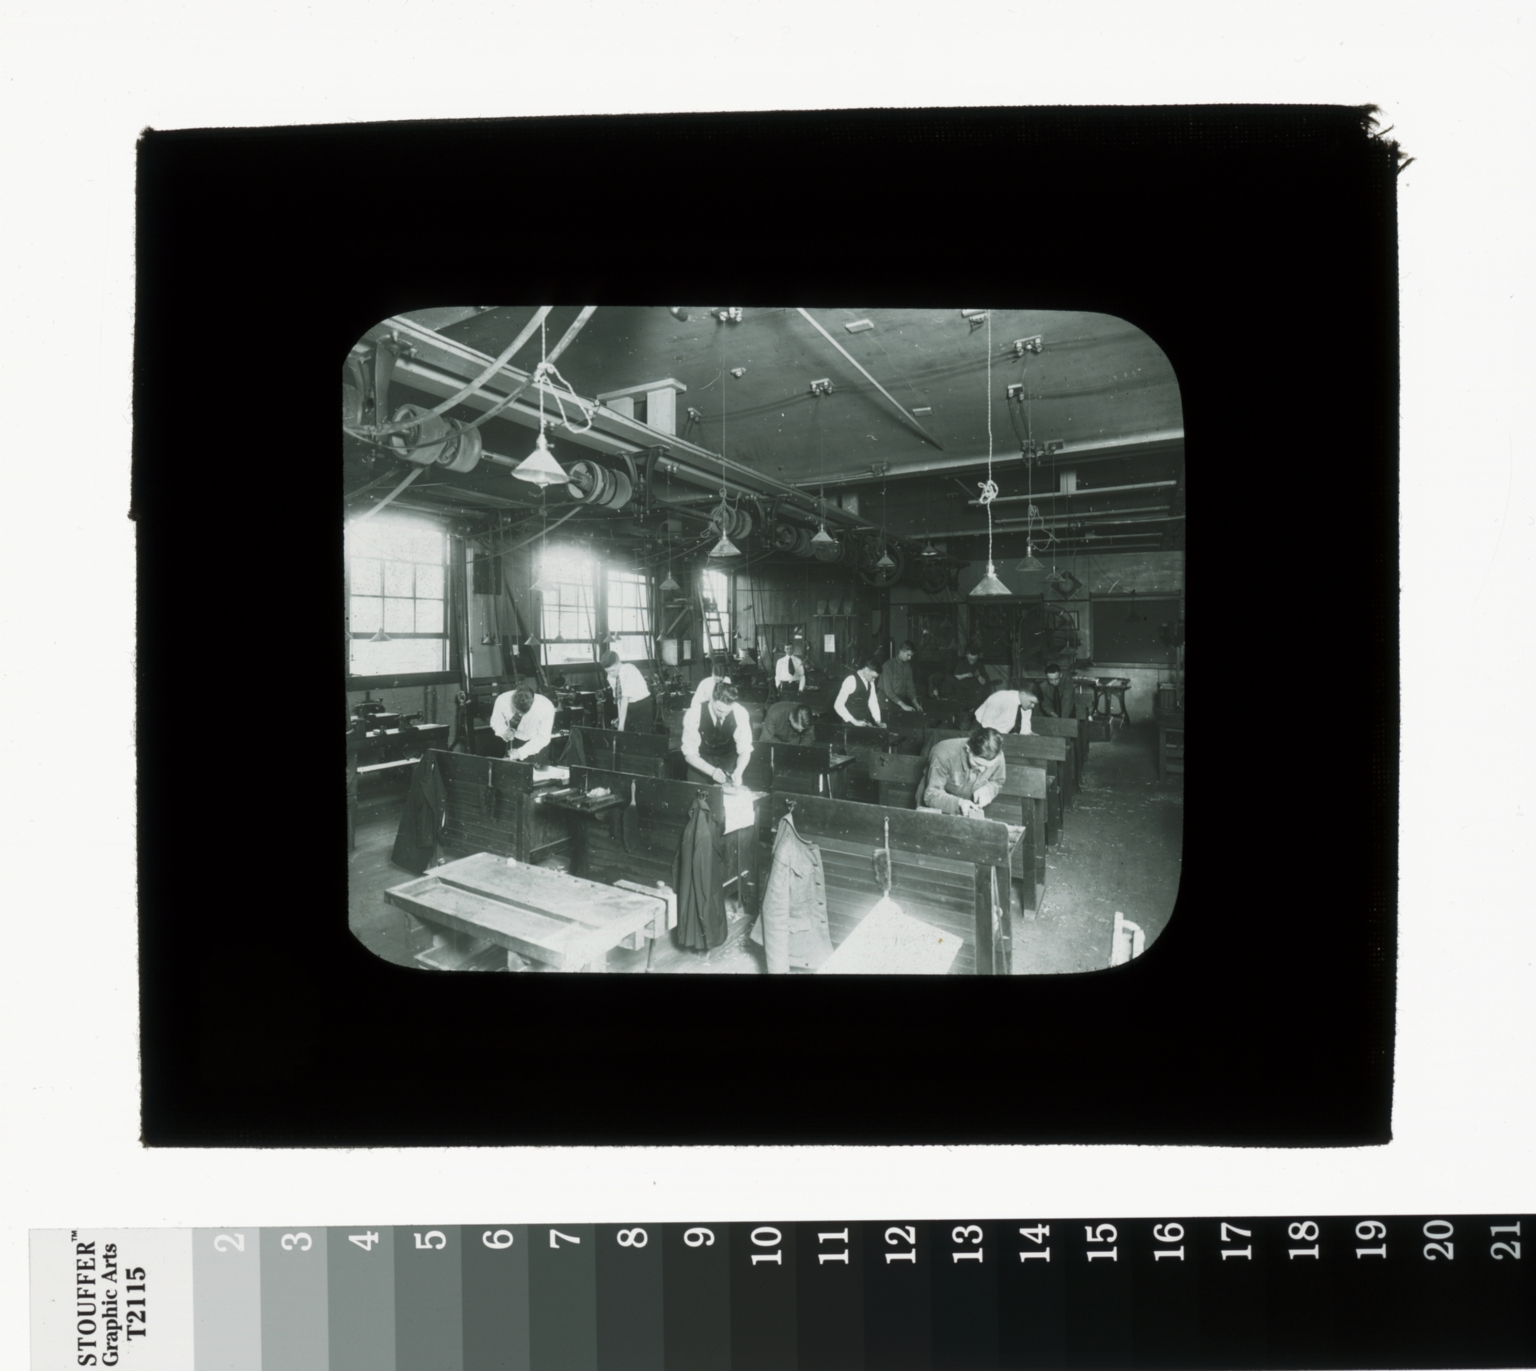 Woodworking class, Department of Manual Training, Rochester Athenaeum and Mechanics Institute